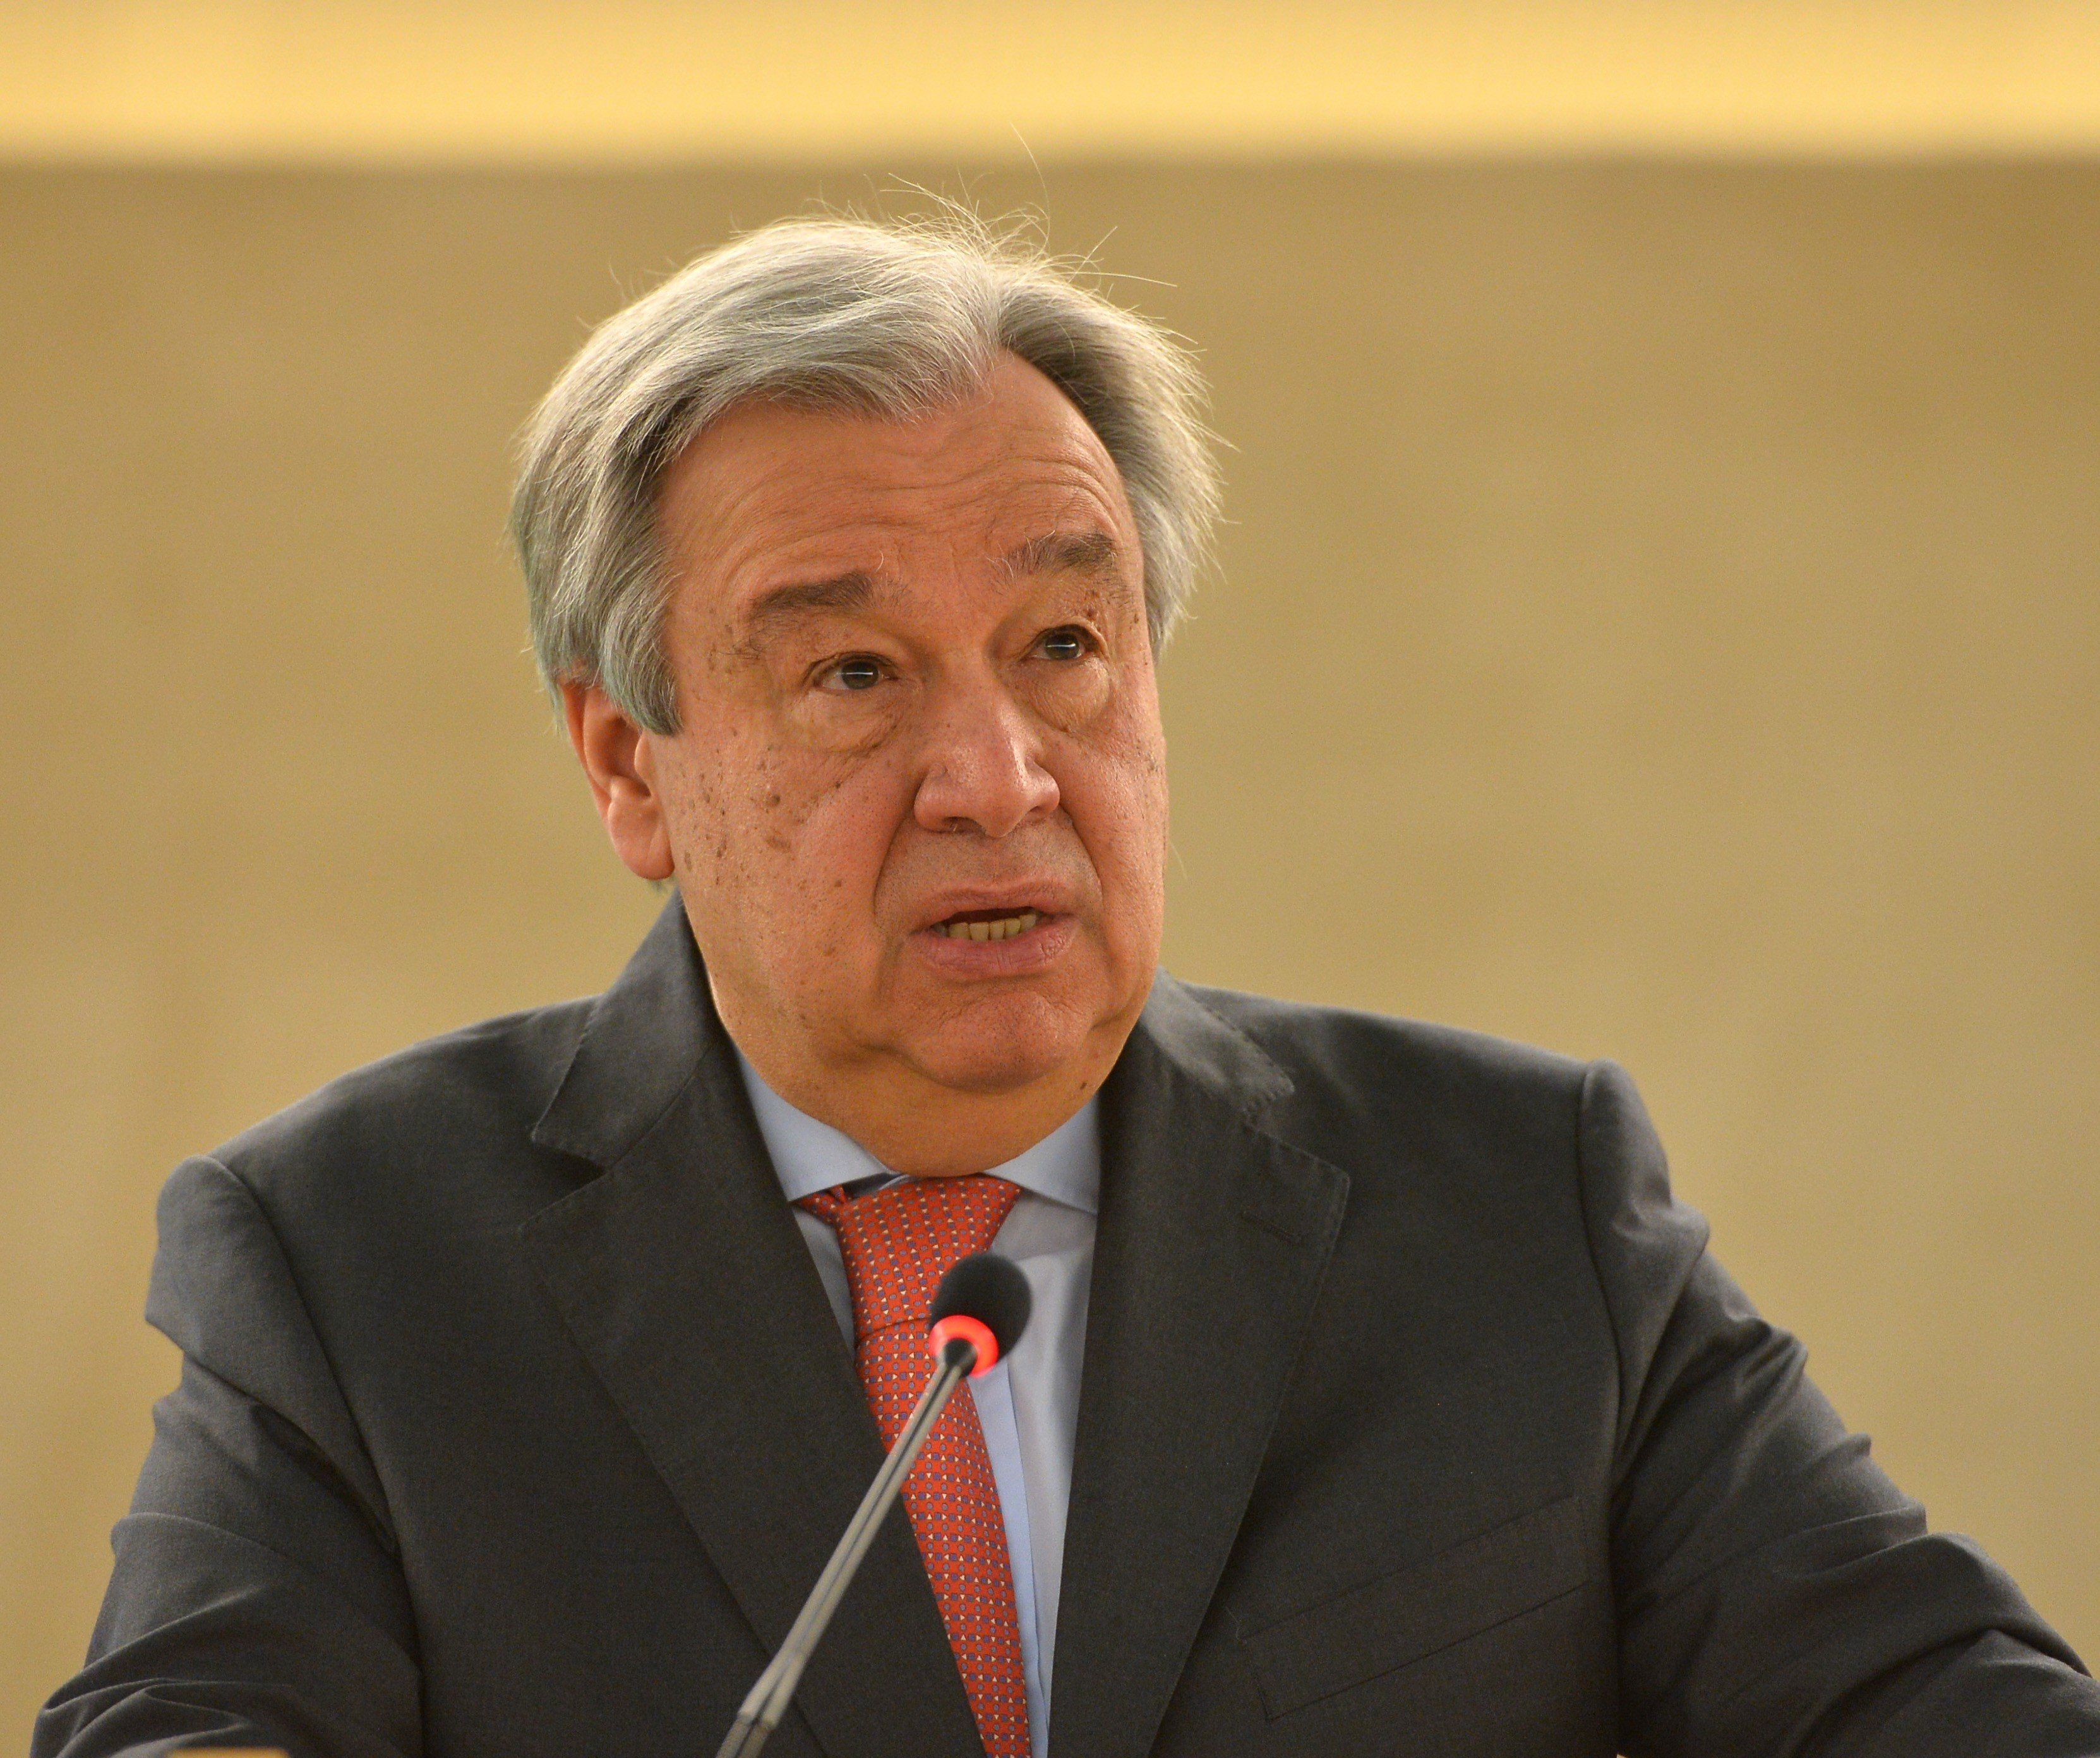 GENEVA, SWITZERLAND - FEBRUARY 27: UN Secretary-General Antonio Guterres delivers a speech during the 34th session of the United Nations Human Rights Council at the United Nations office in Geneva, Switzerland on February 27, 2017. (Photo by Mustafa Yalcin/Anadolu Agency/Getty Images)